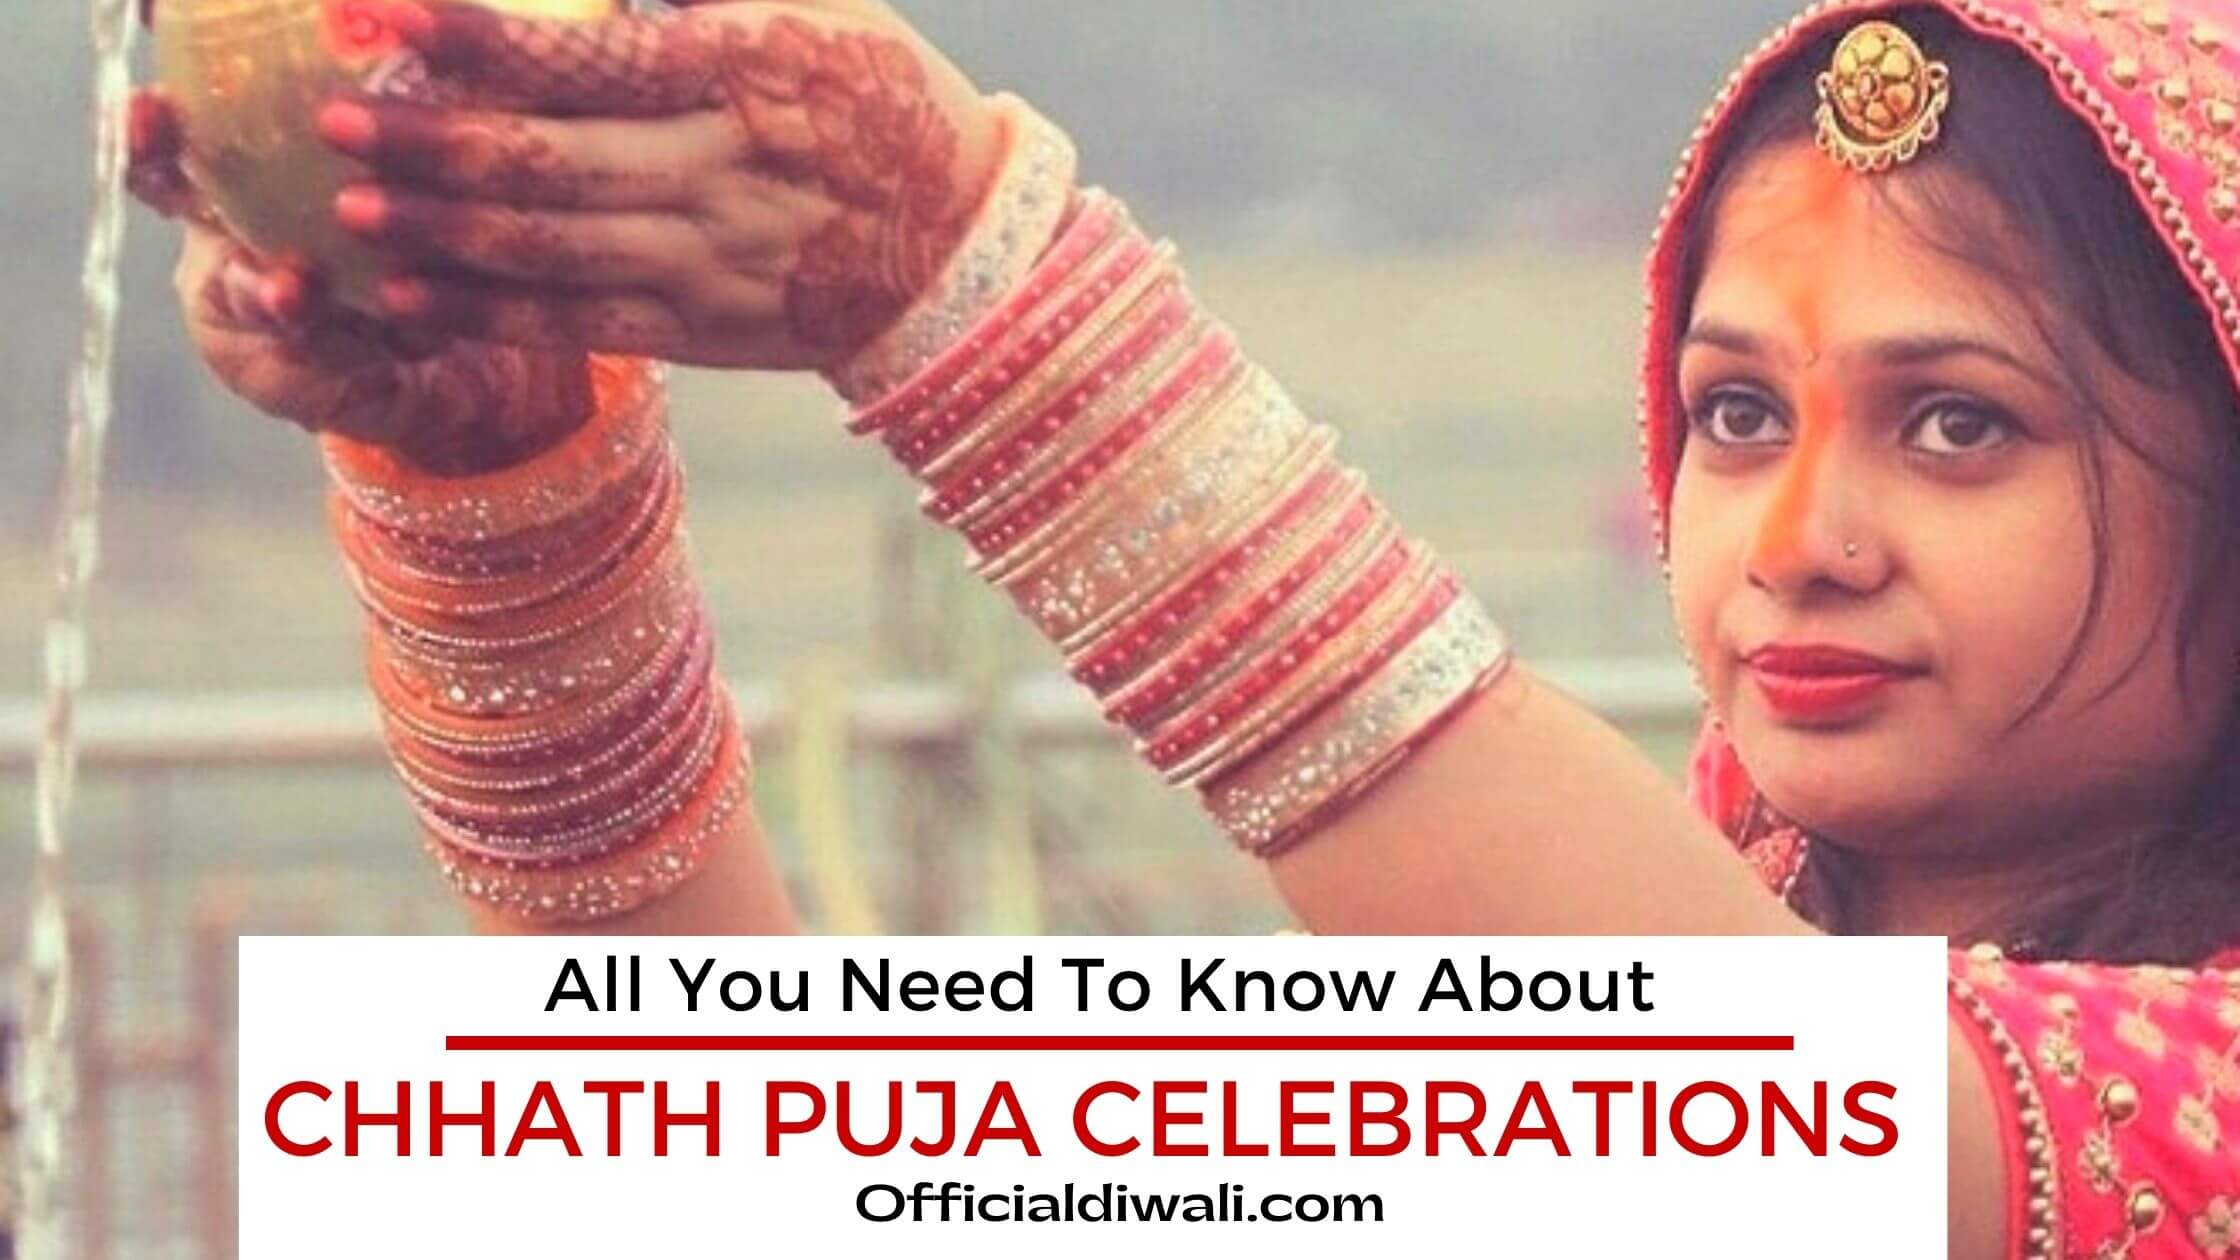 All You Need To Know About Chhath Puja Celebrations 2021